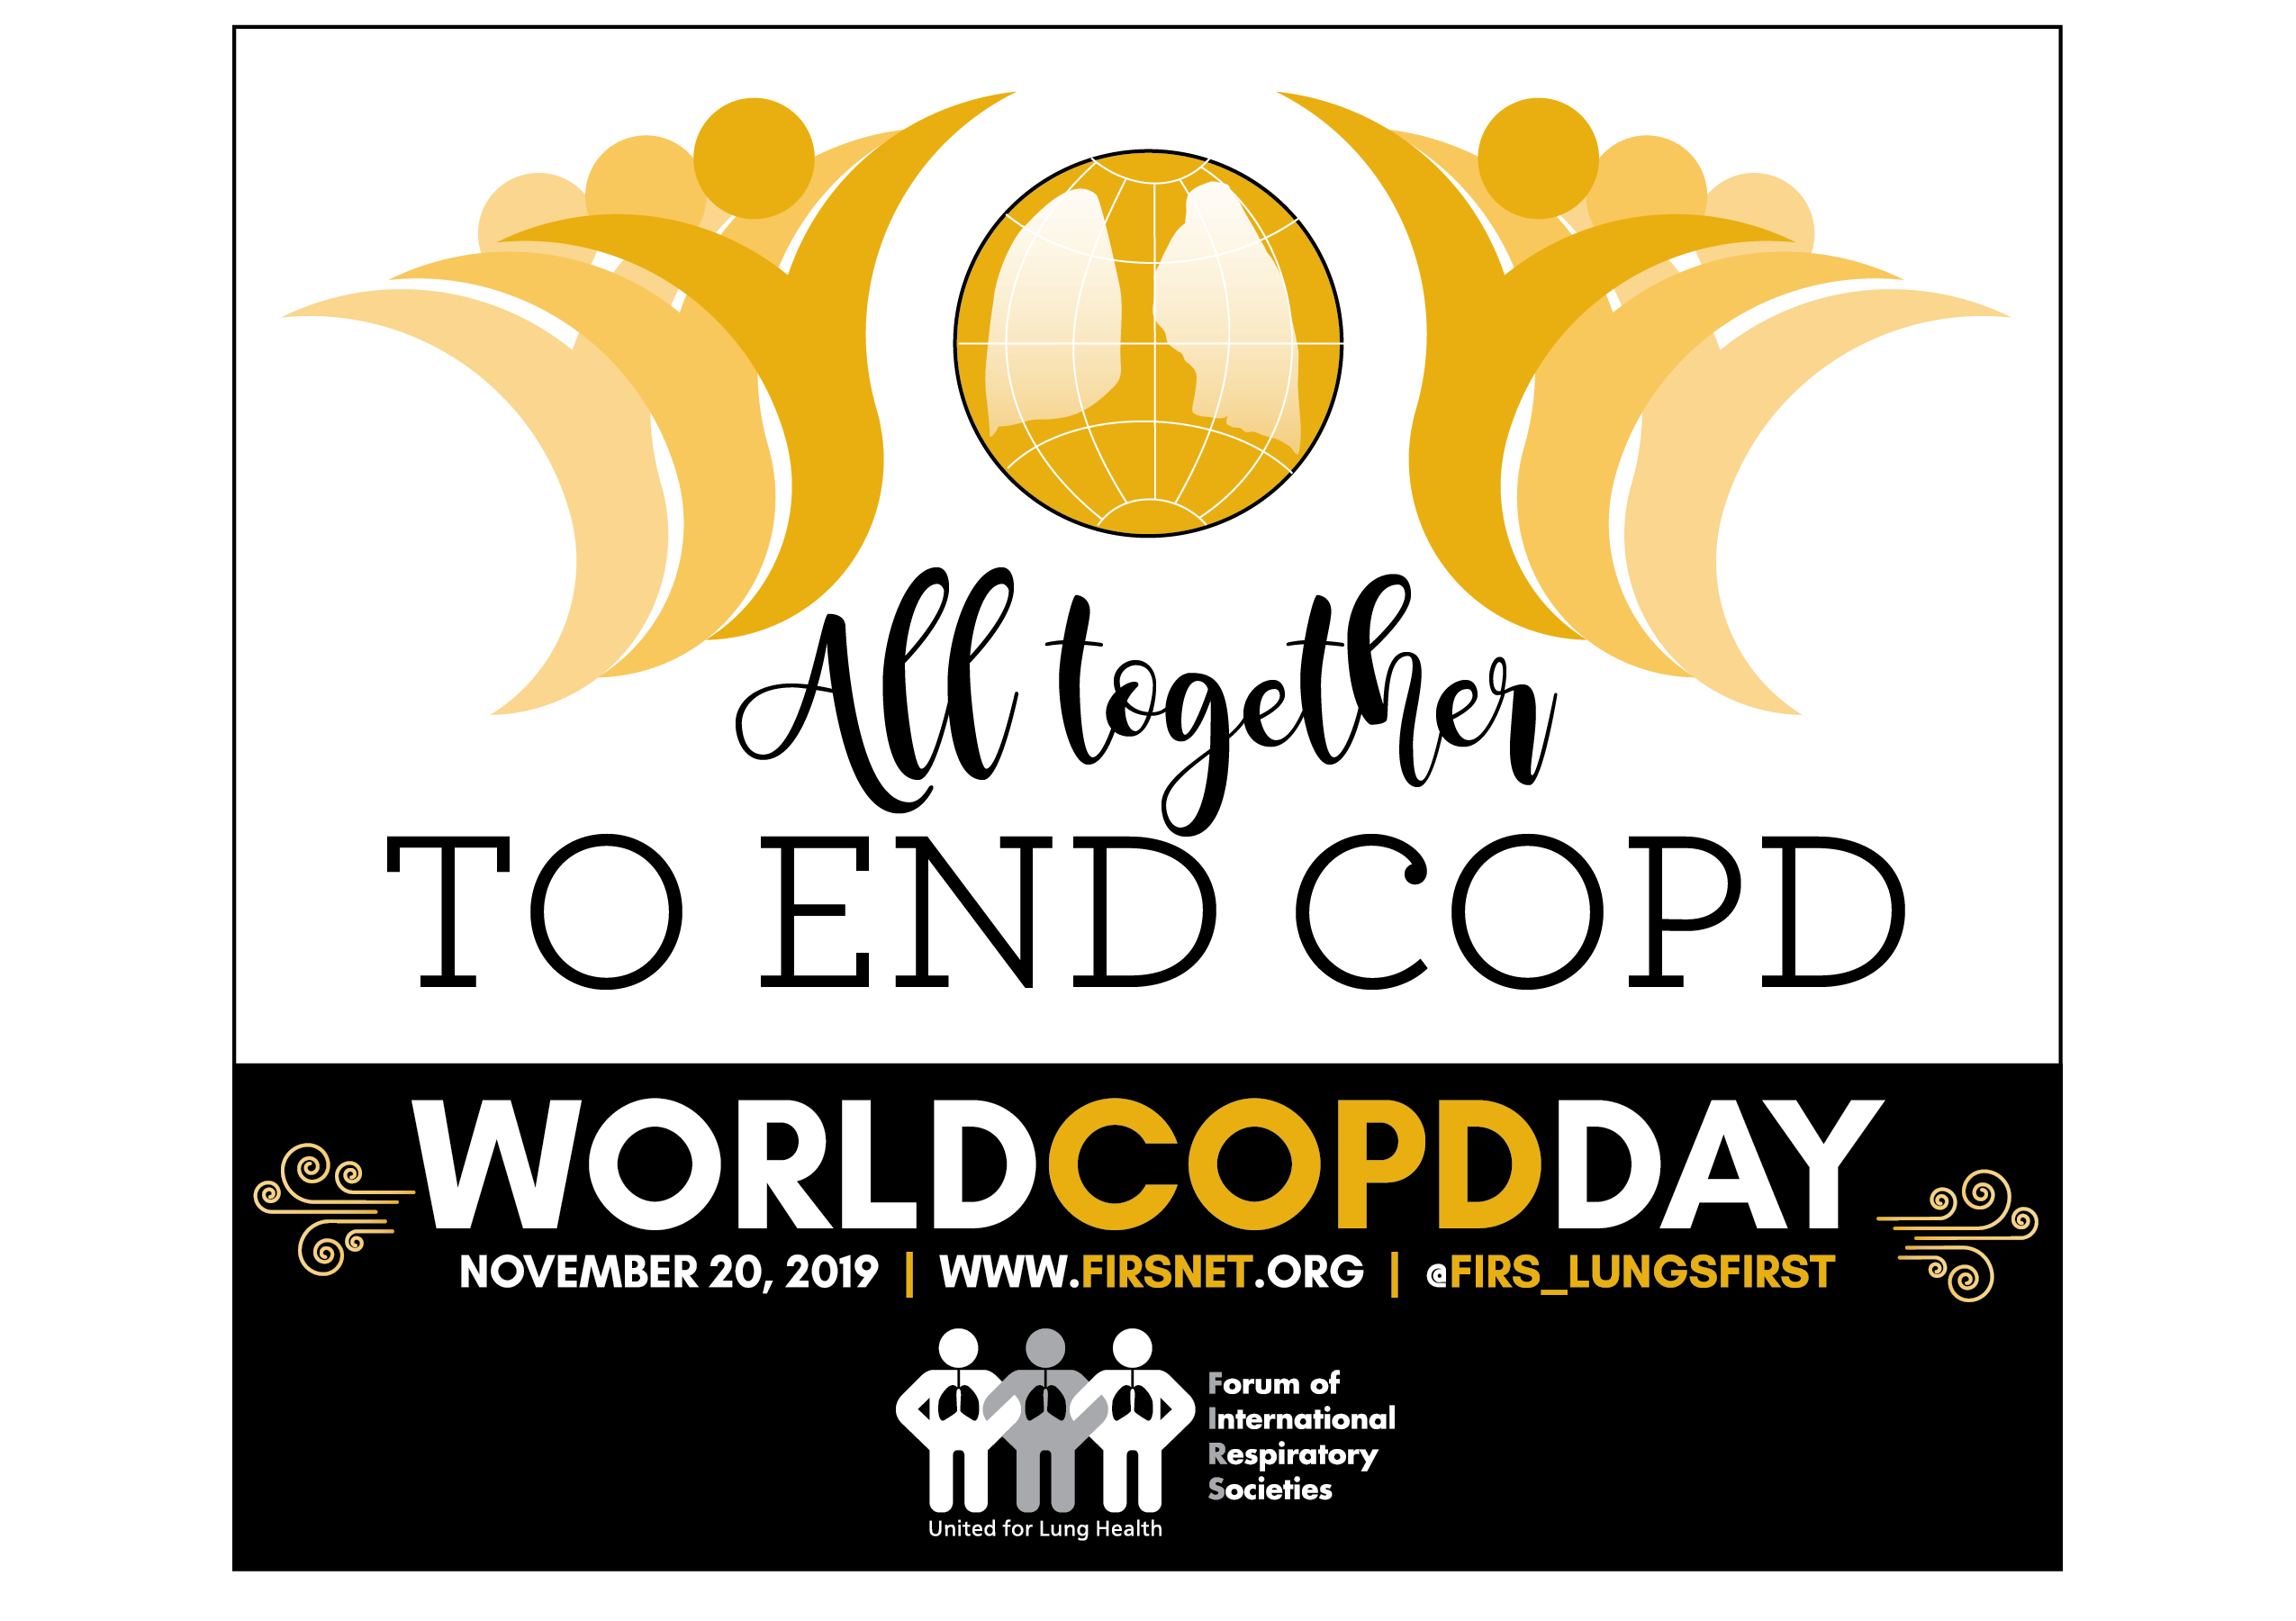 World COPD Day: All together to end COPD